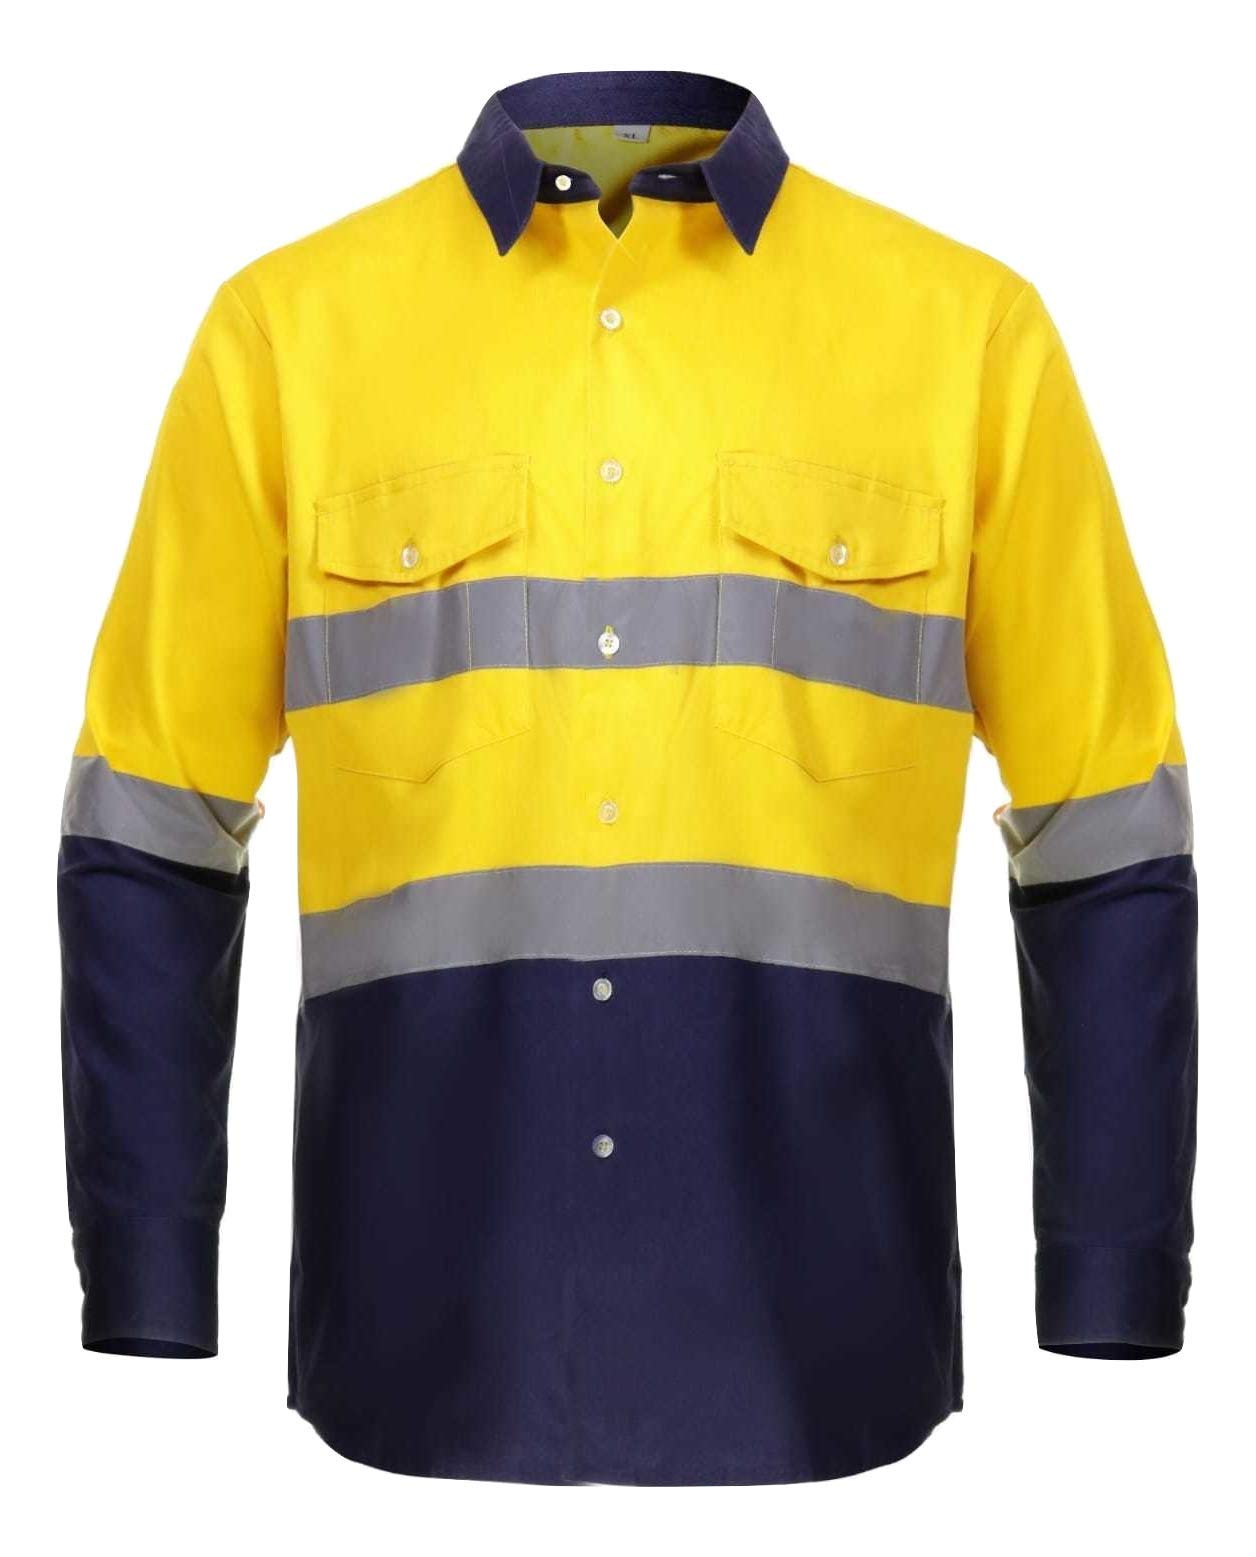 Just In Trend High Visibility Hi Vis Reflective Safety Work Shirts (4X-Large, Yellow/Navy Blue)